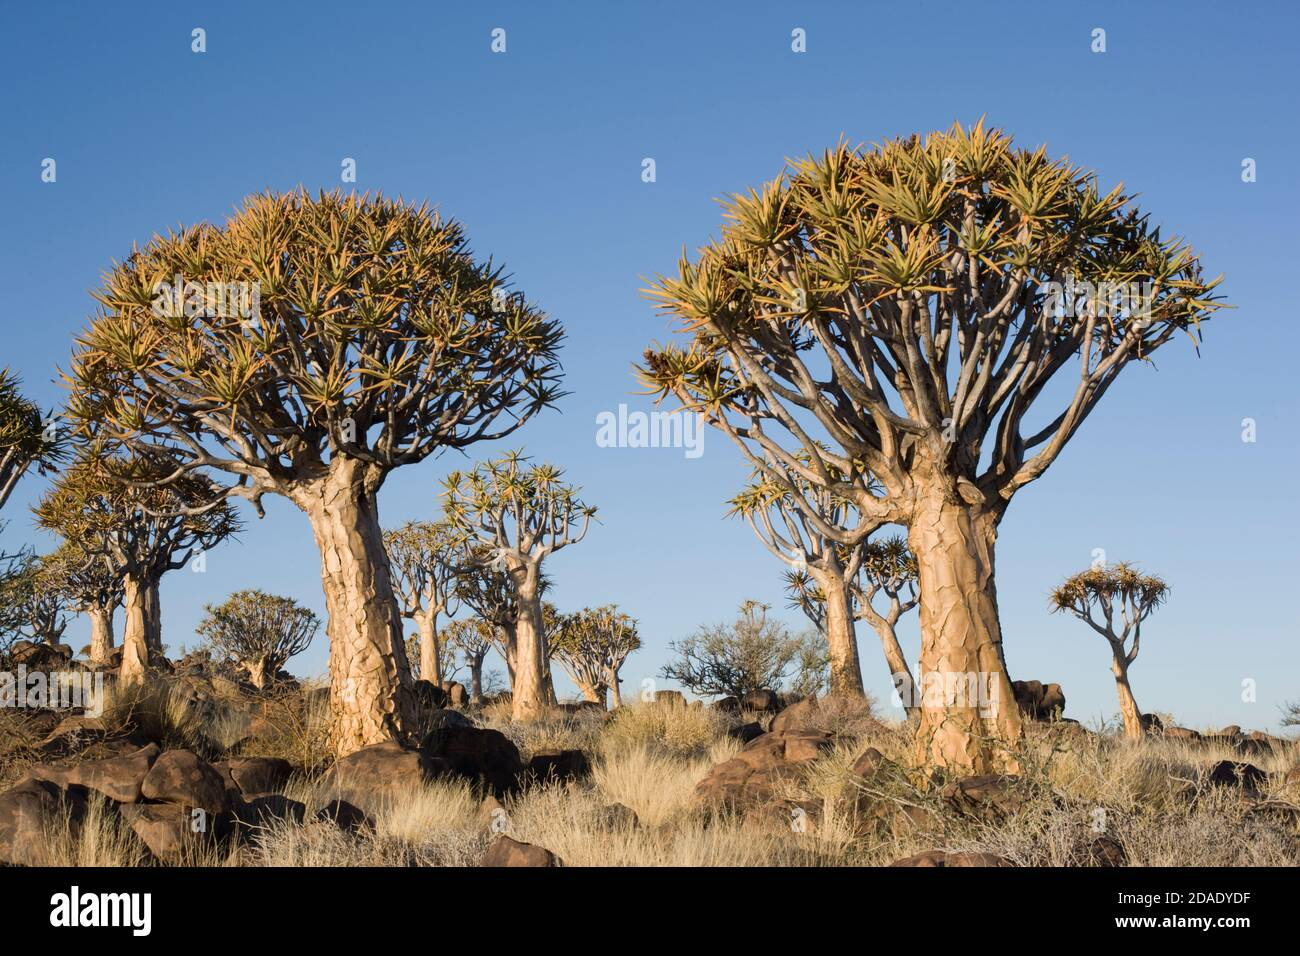 geography / travel, Namibia, Keetmanshoop, Quiver Tree Forest, Additional-Rights-Clearance-Info-Not-Available Stock Photo